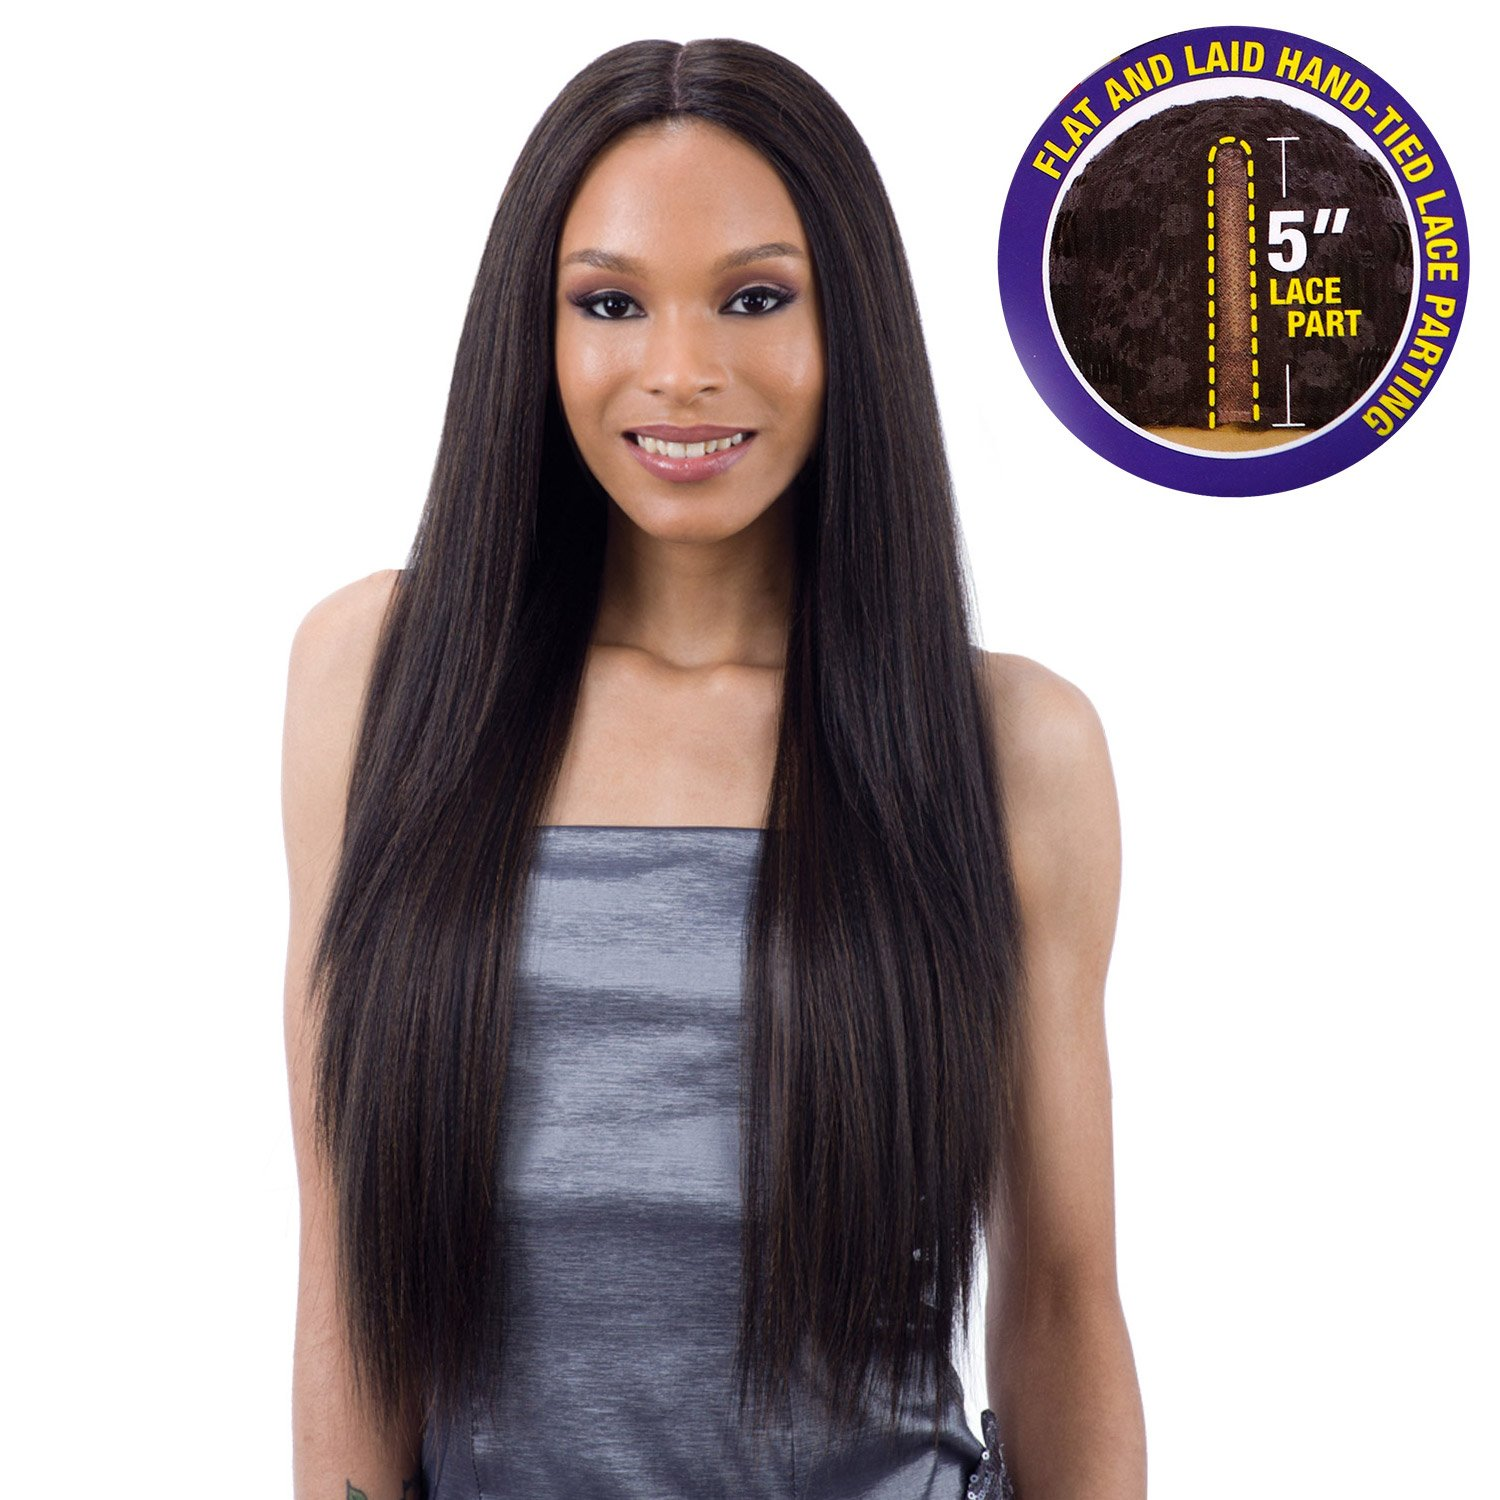 Freetress Equal 5 Inch Quality inspection Lace Wig VALENCIA Part 4 5% OFF